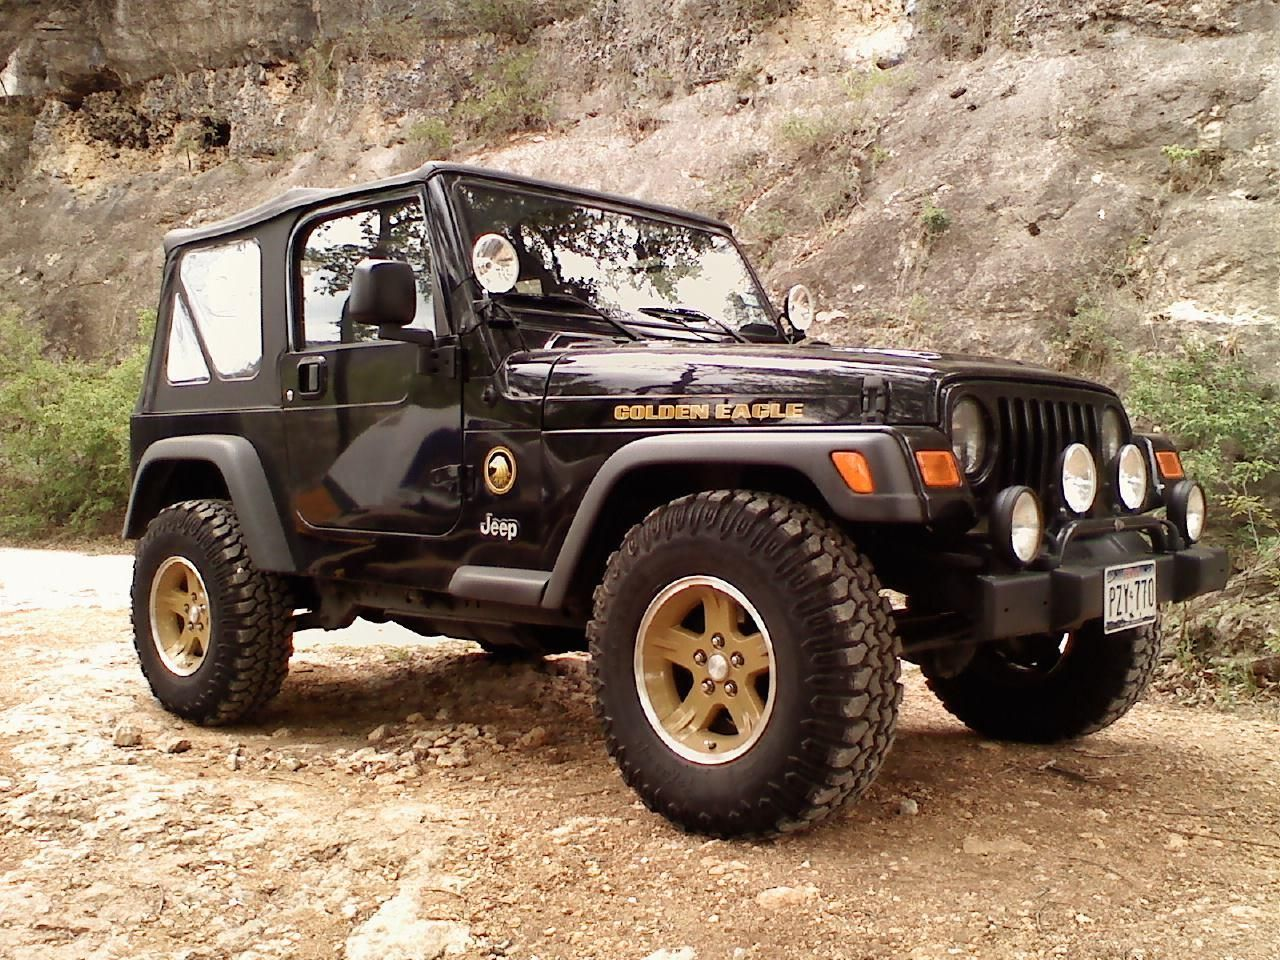 The Jk Gen Jeep Wrangler Has Been With Us Since 2007 Meaning That